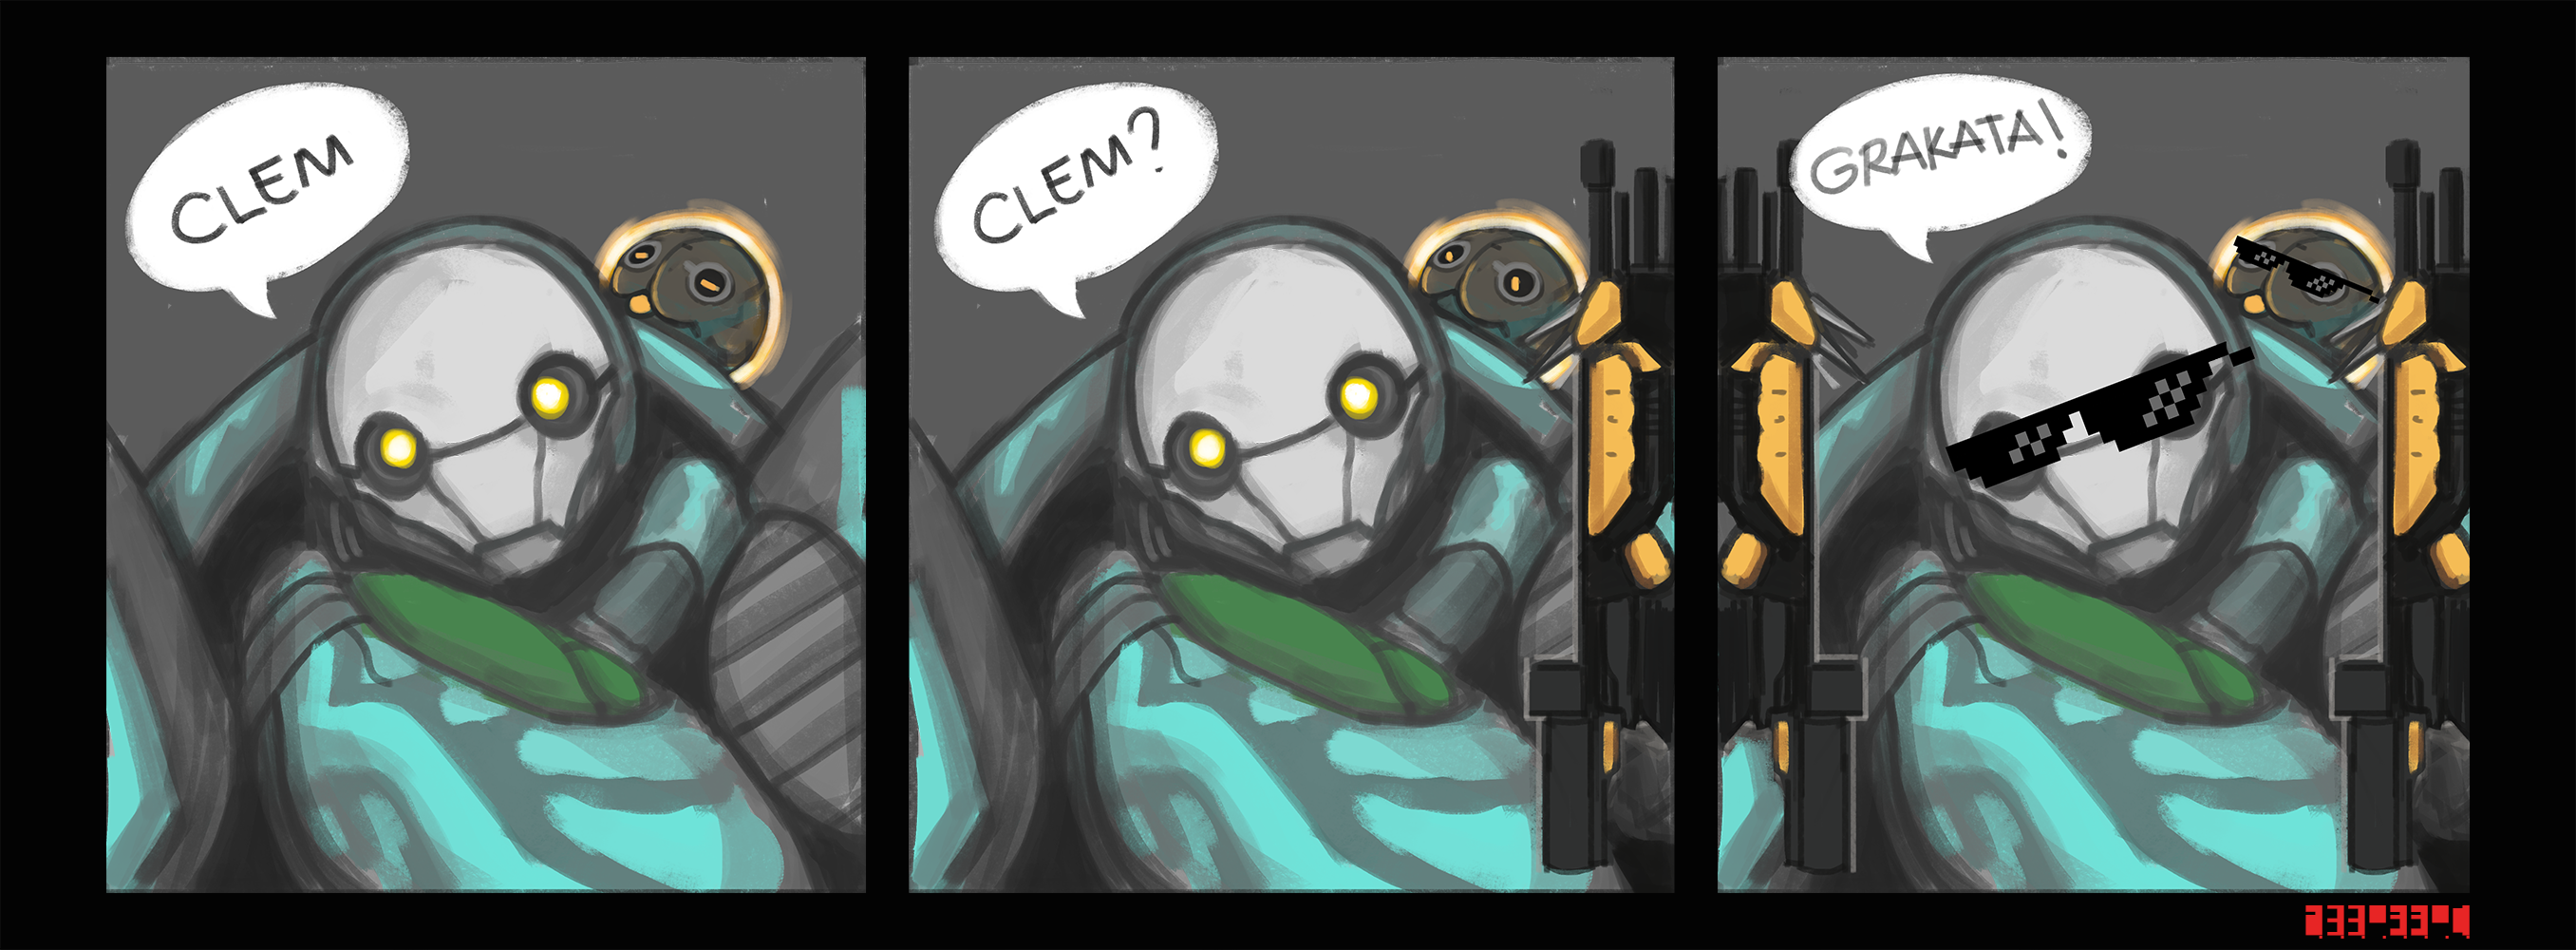 clem_by_acculluz-d9a3paw.png